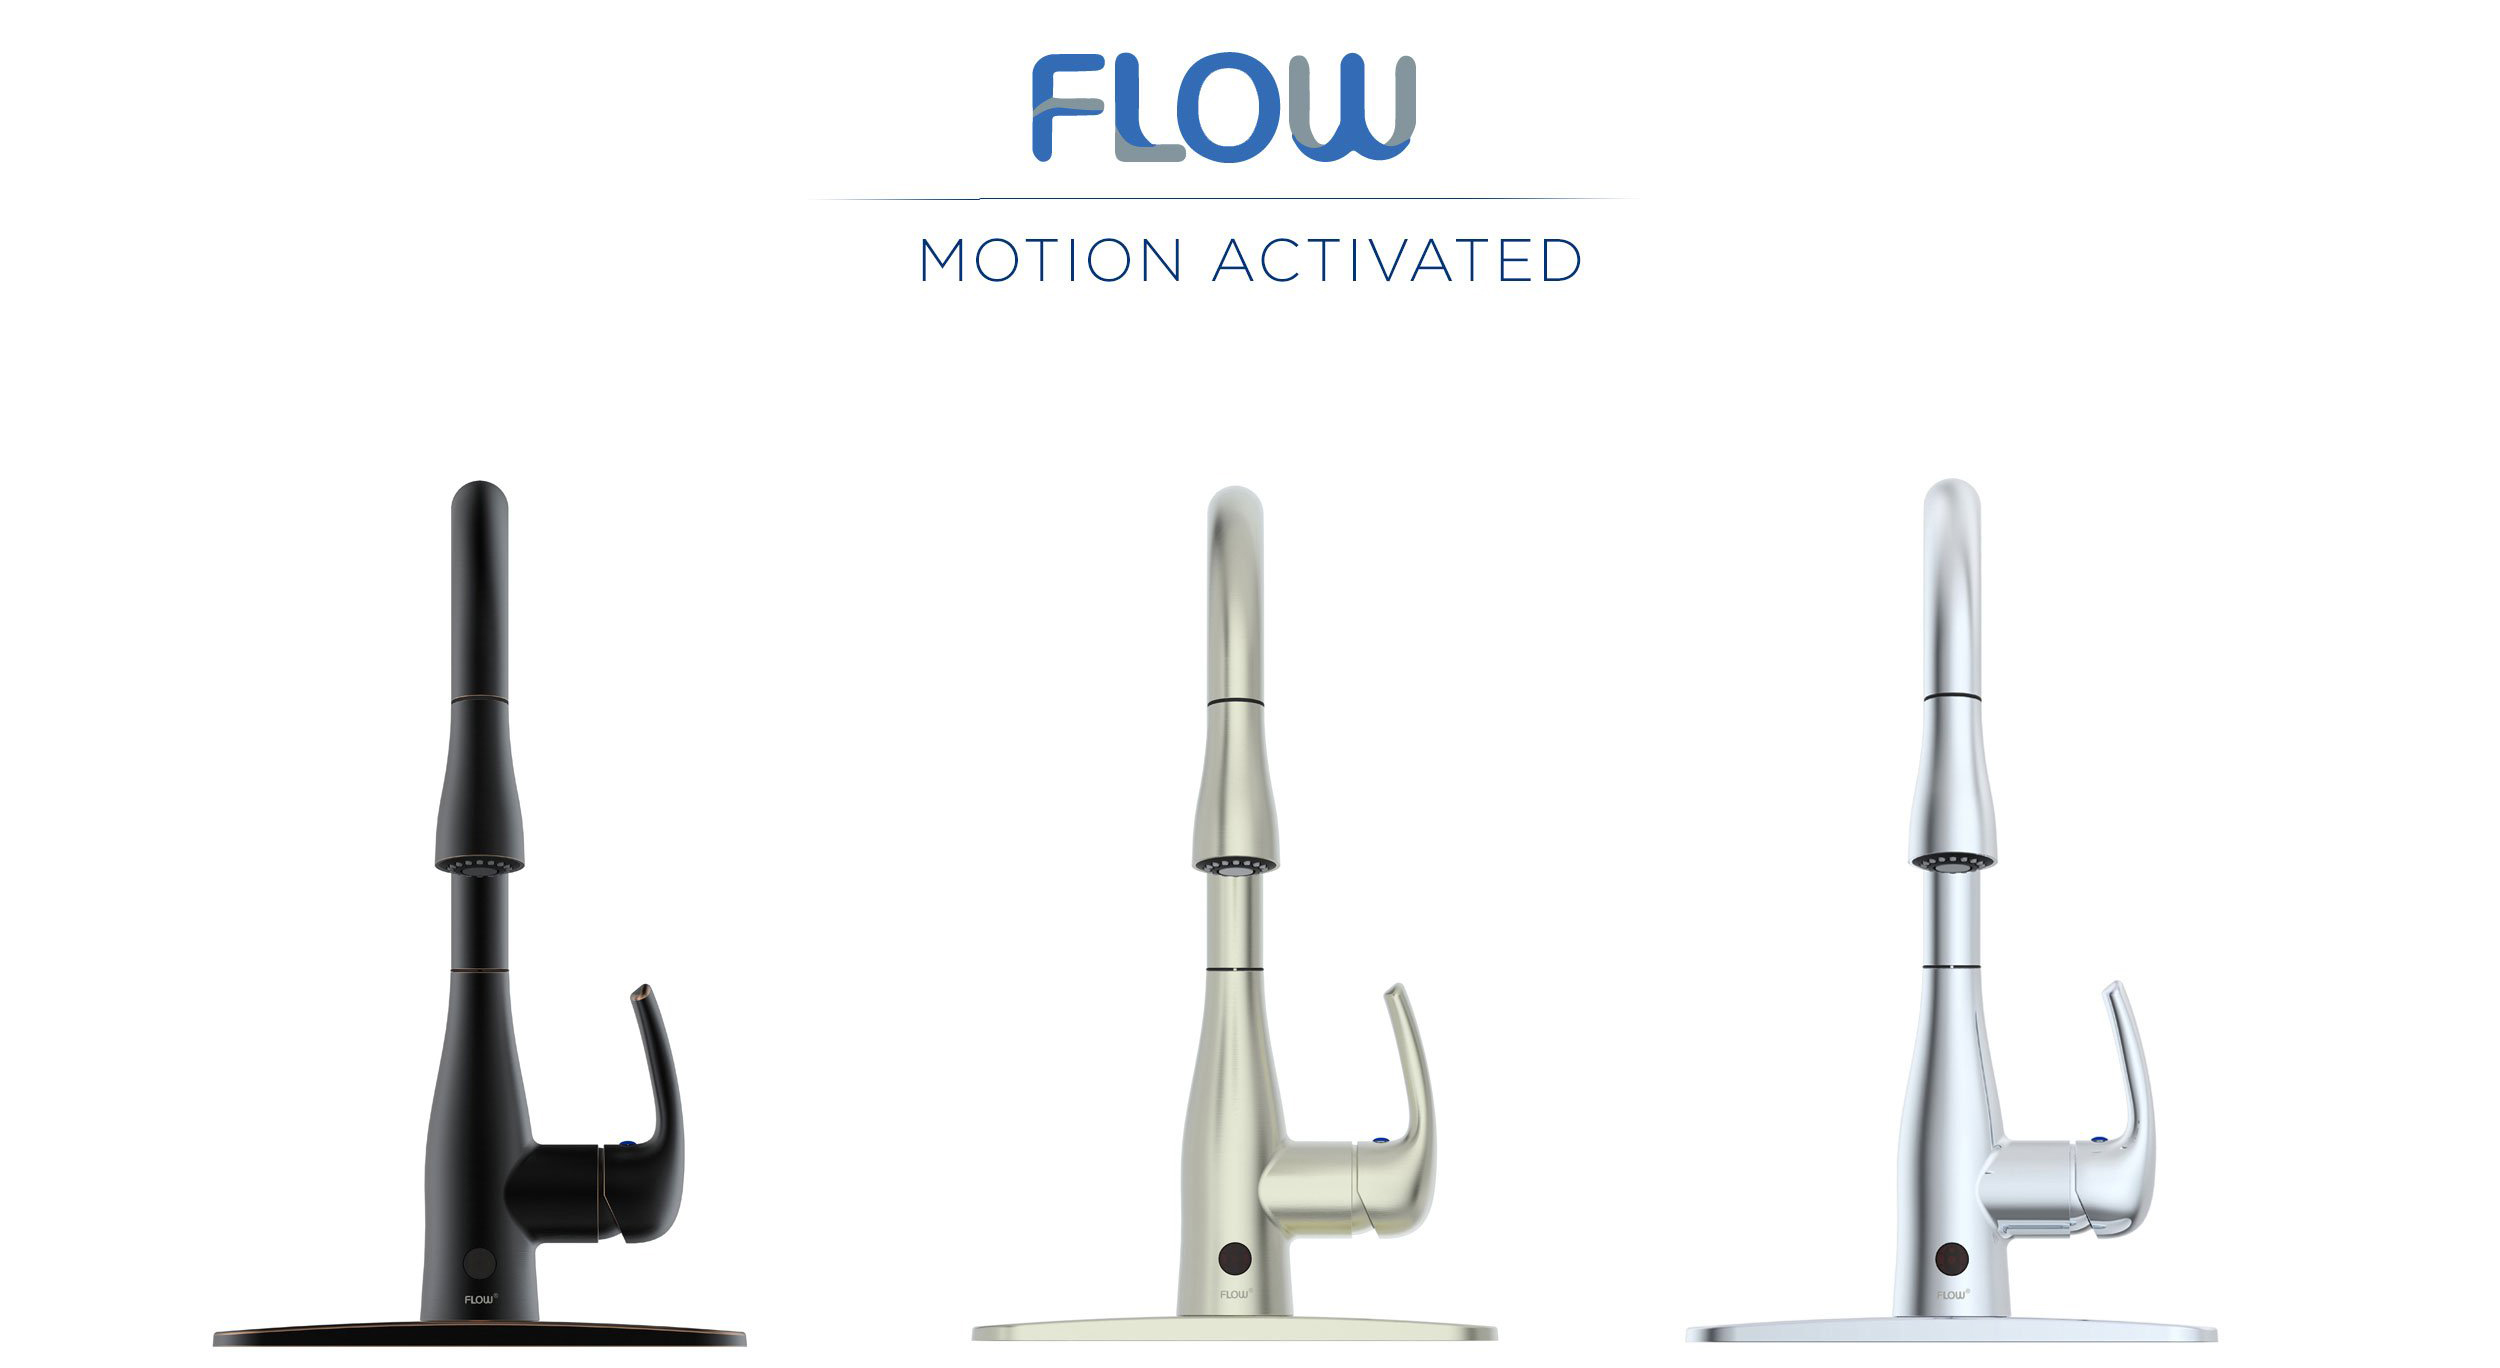 Flow Kitchen Faucet Hands Free Motion Sensing Technology